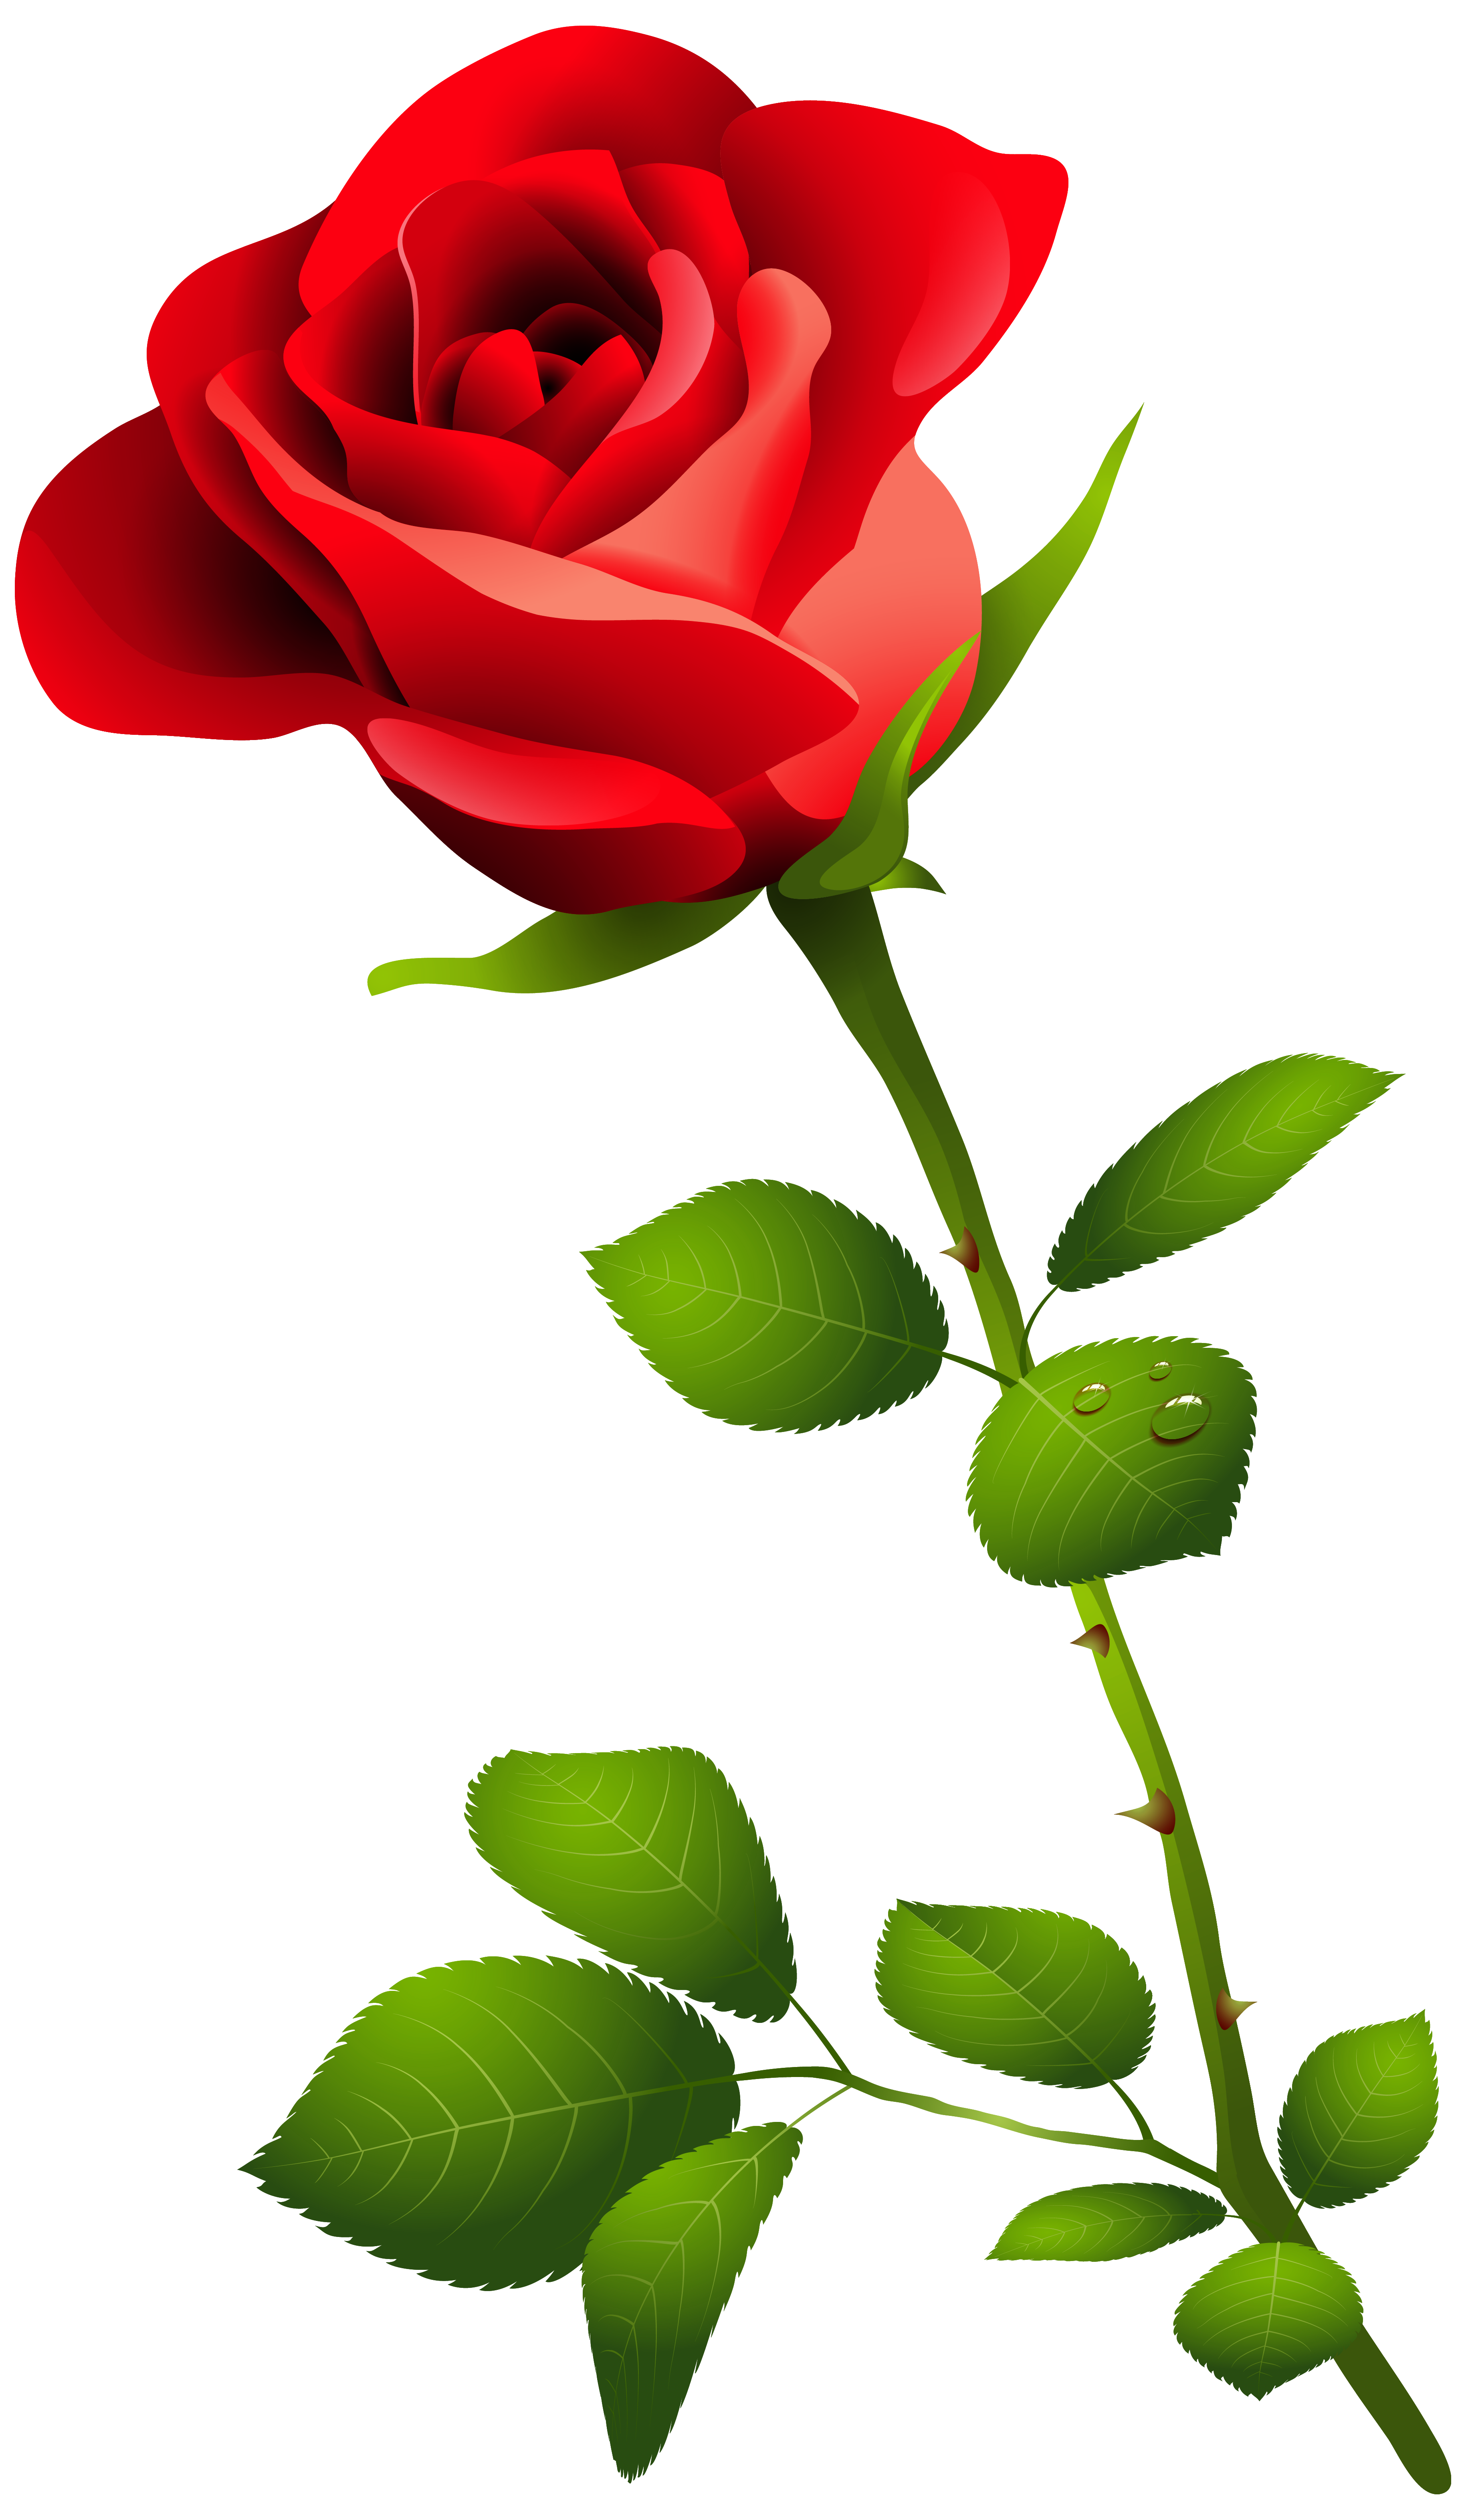 Stem drawing red rose. With png clipart image